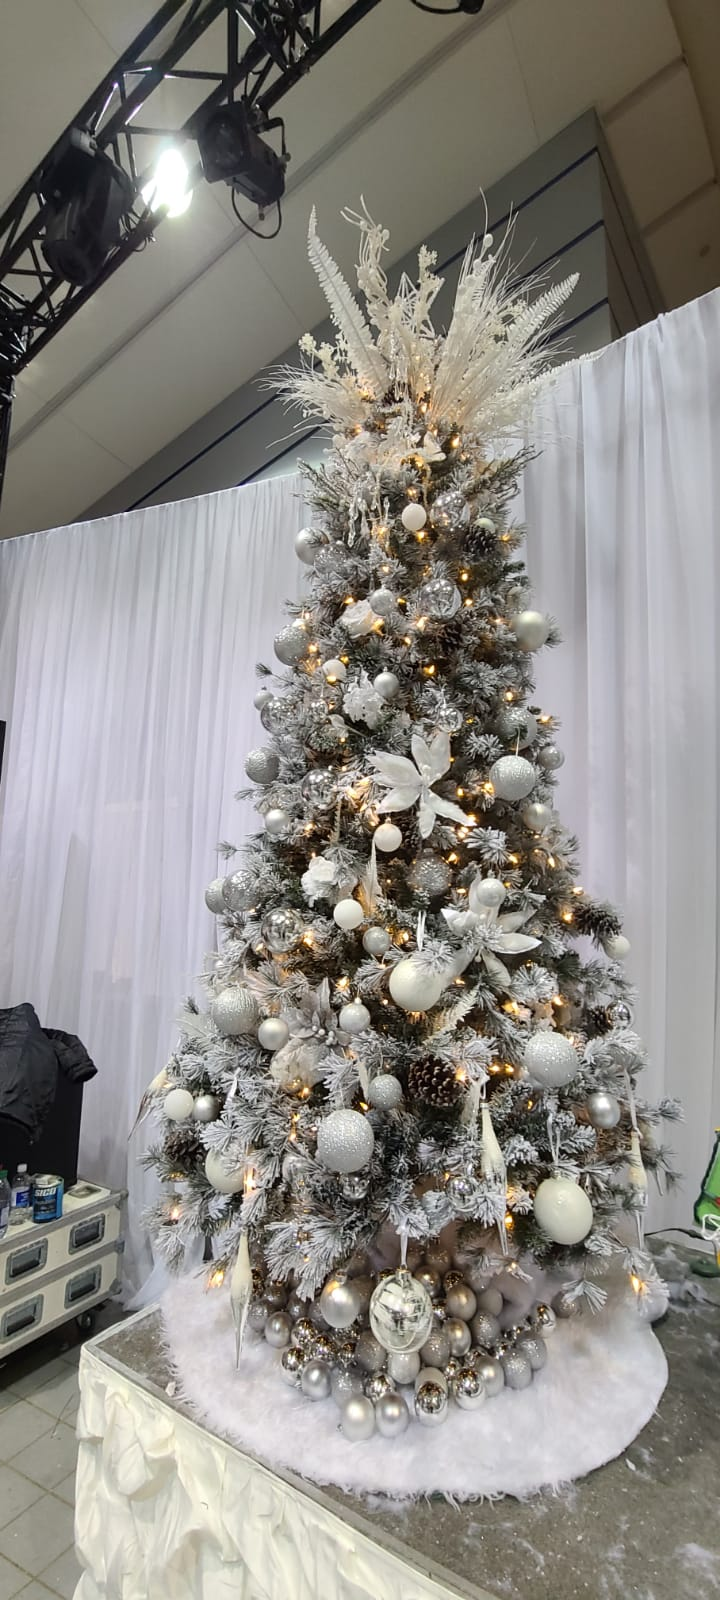 Tree for Festival of Trees 2019 - Included $3,600 in gift cards